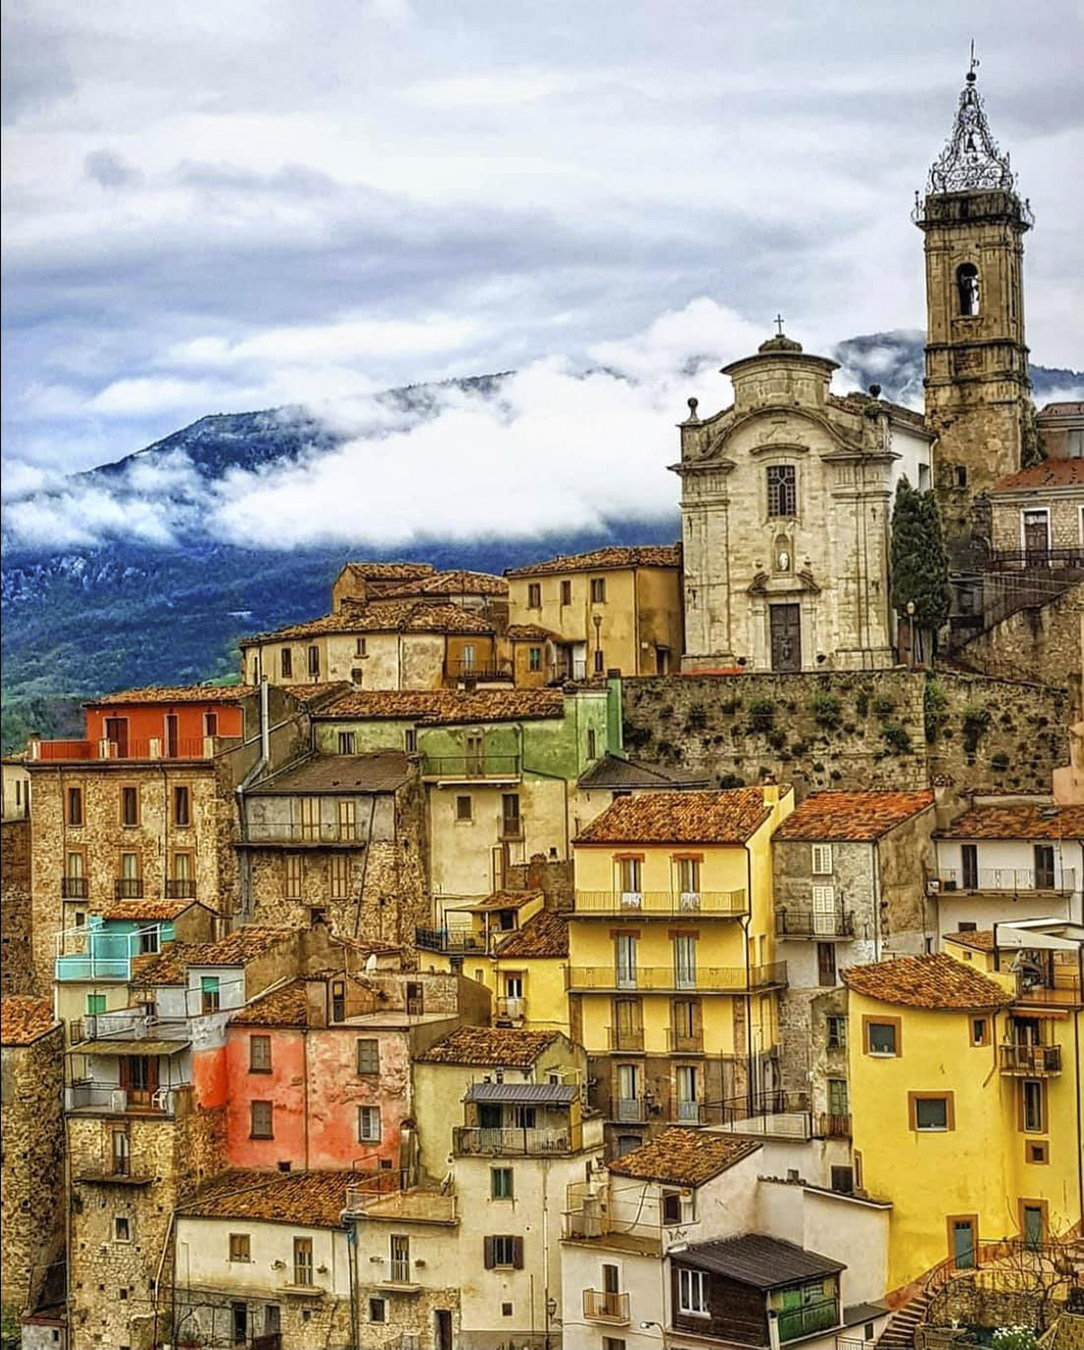 Colourful hanging houses in Colledimezzo, a beautiful hilltop village in Abruzzo, Italy